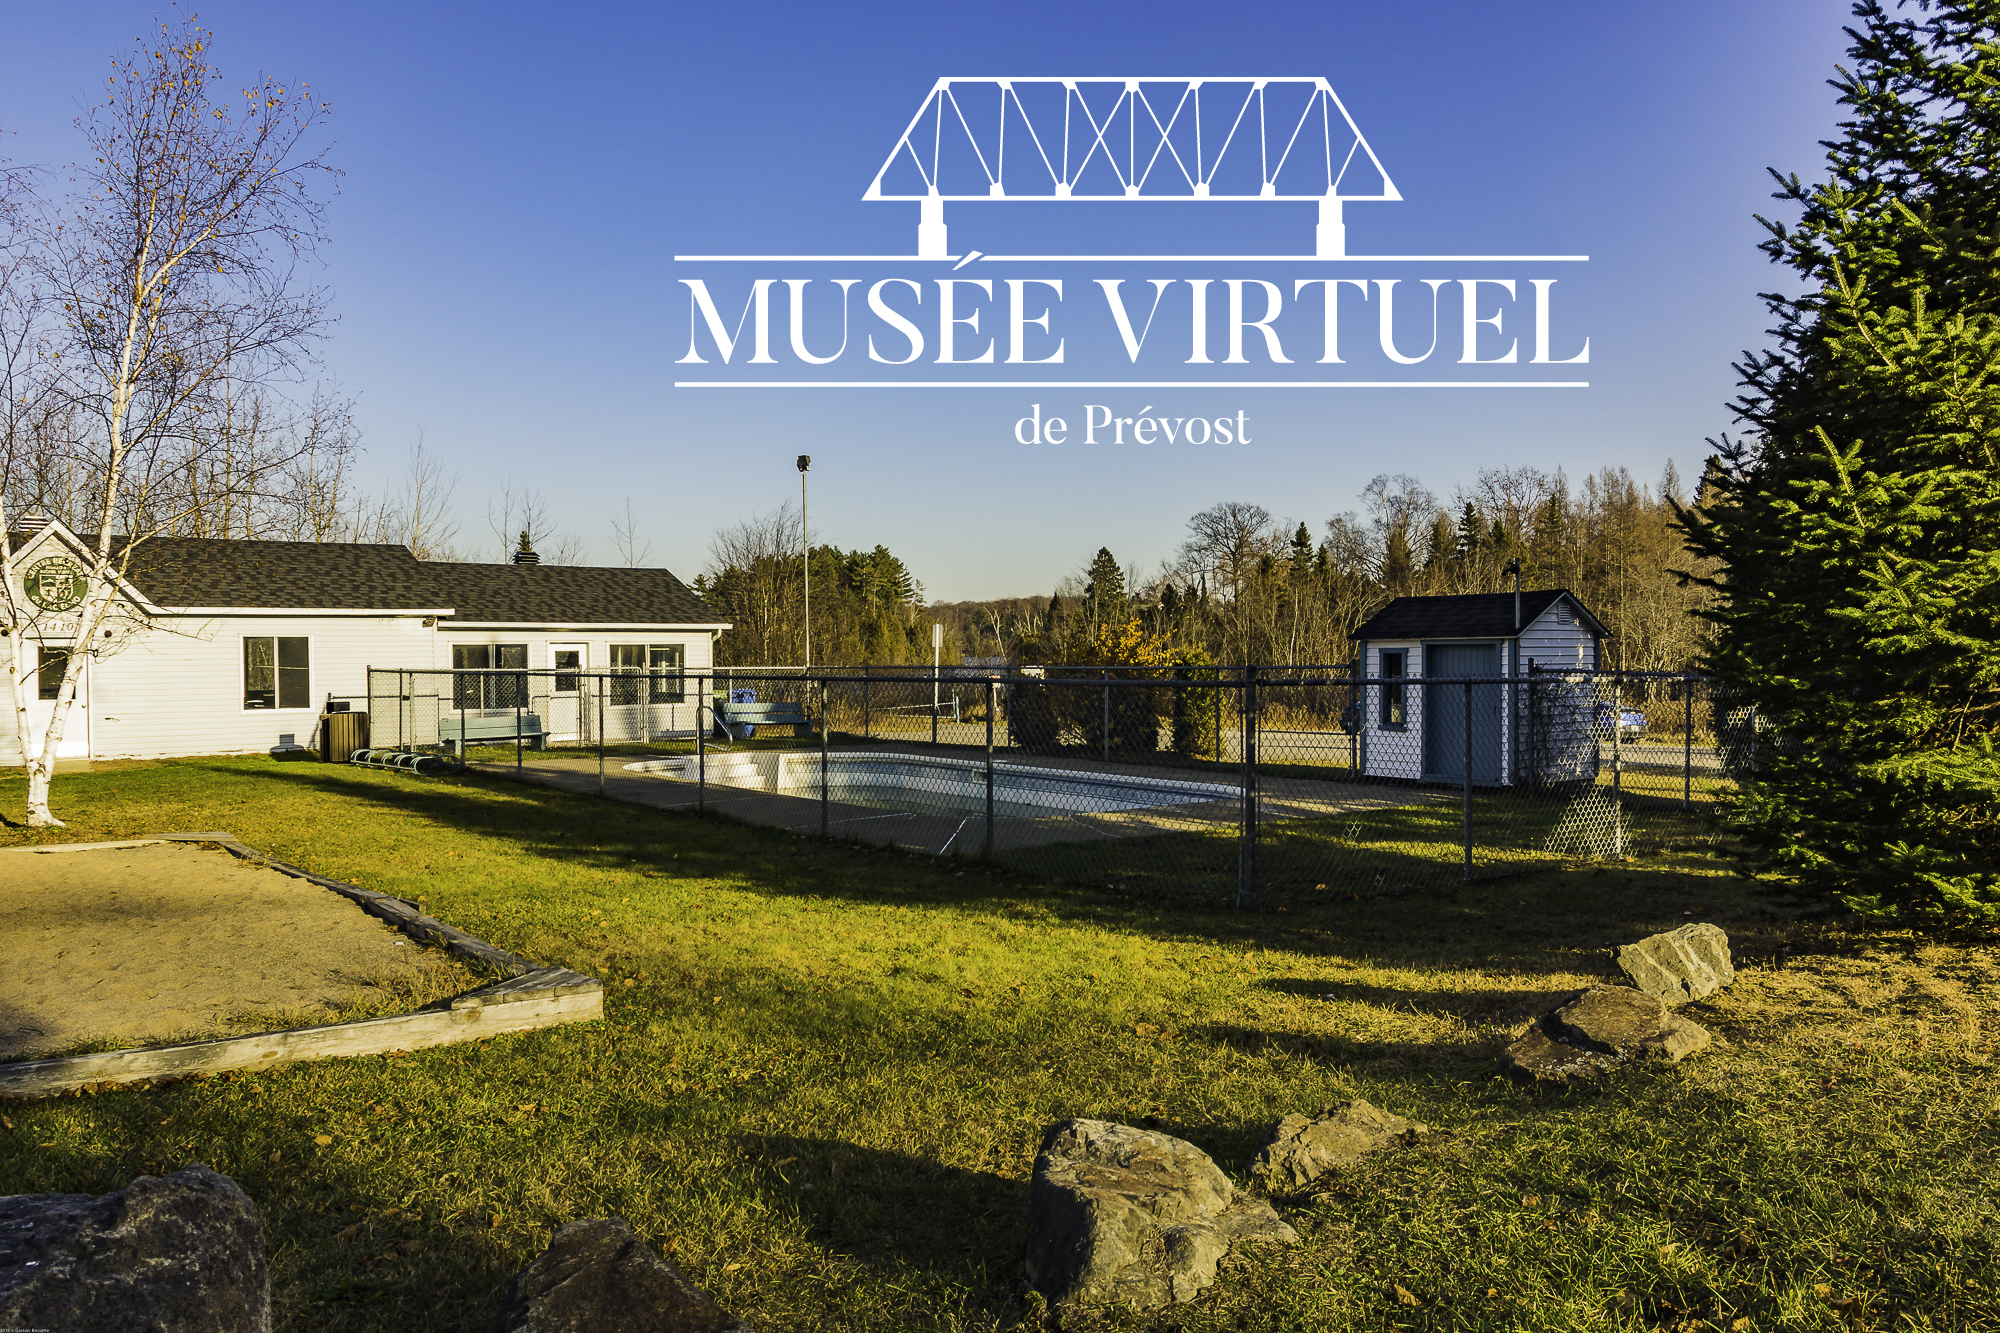 Pavillon Michel-Leduc en 2016 - Collection de la Ville de Prévost - © Gaston Bessette